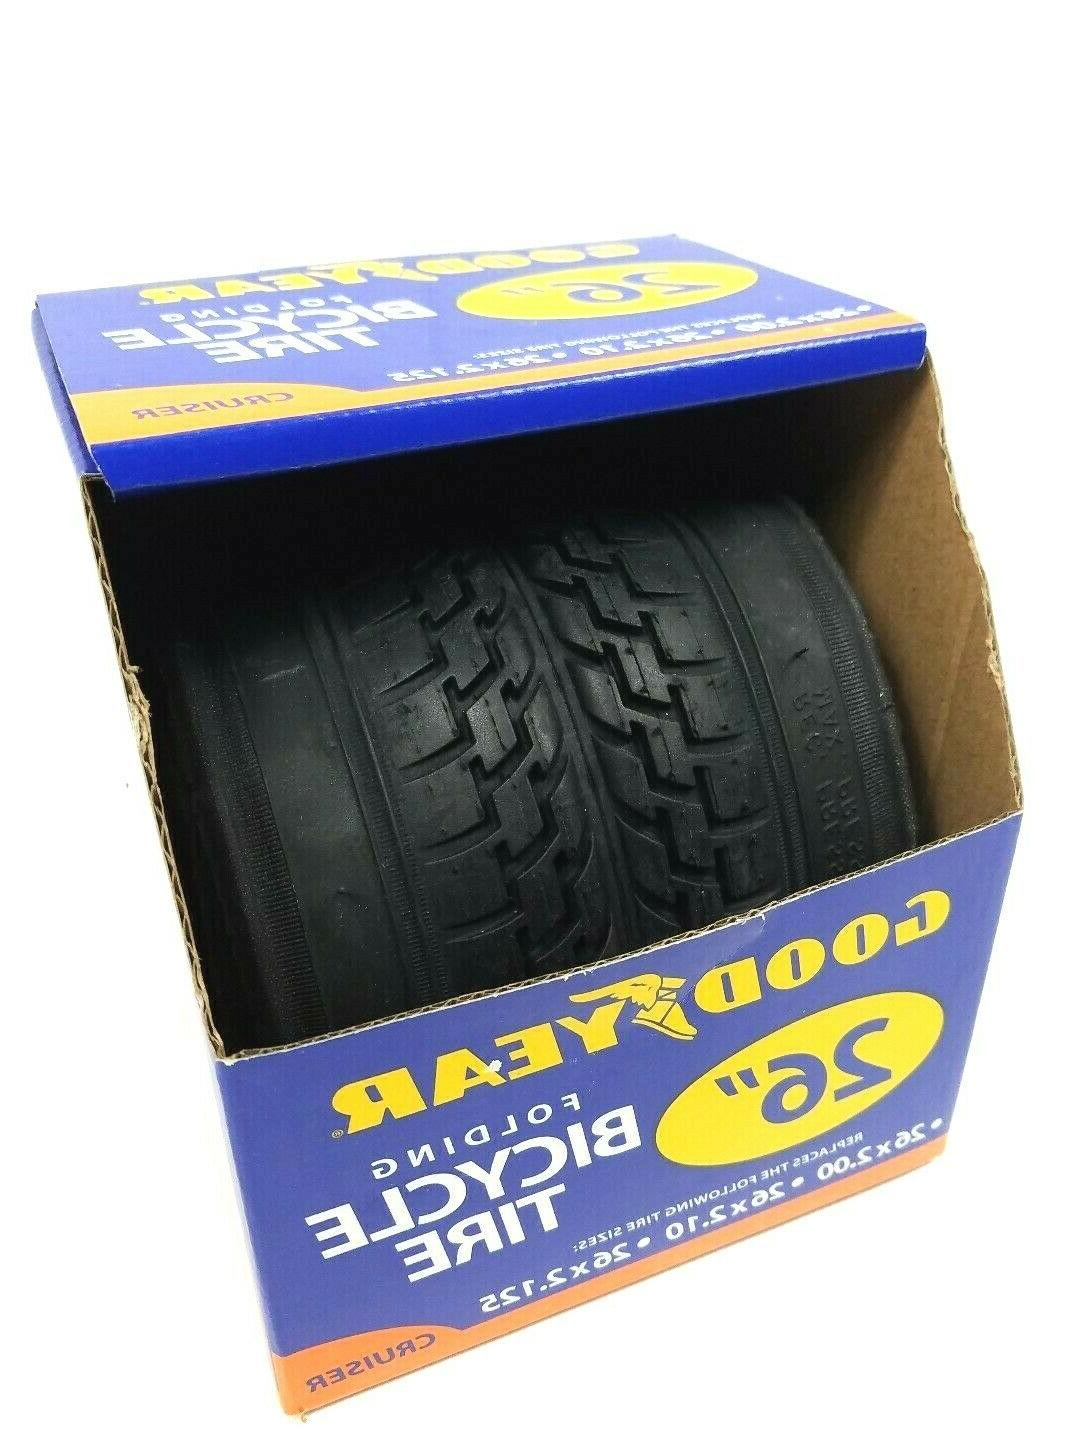 Goodyear Mountain Bike Bicycle Tire NEW Your of 1